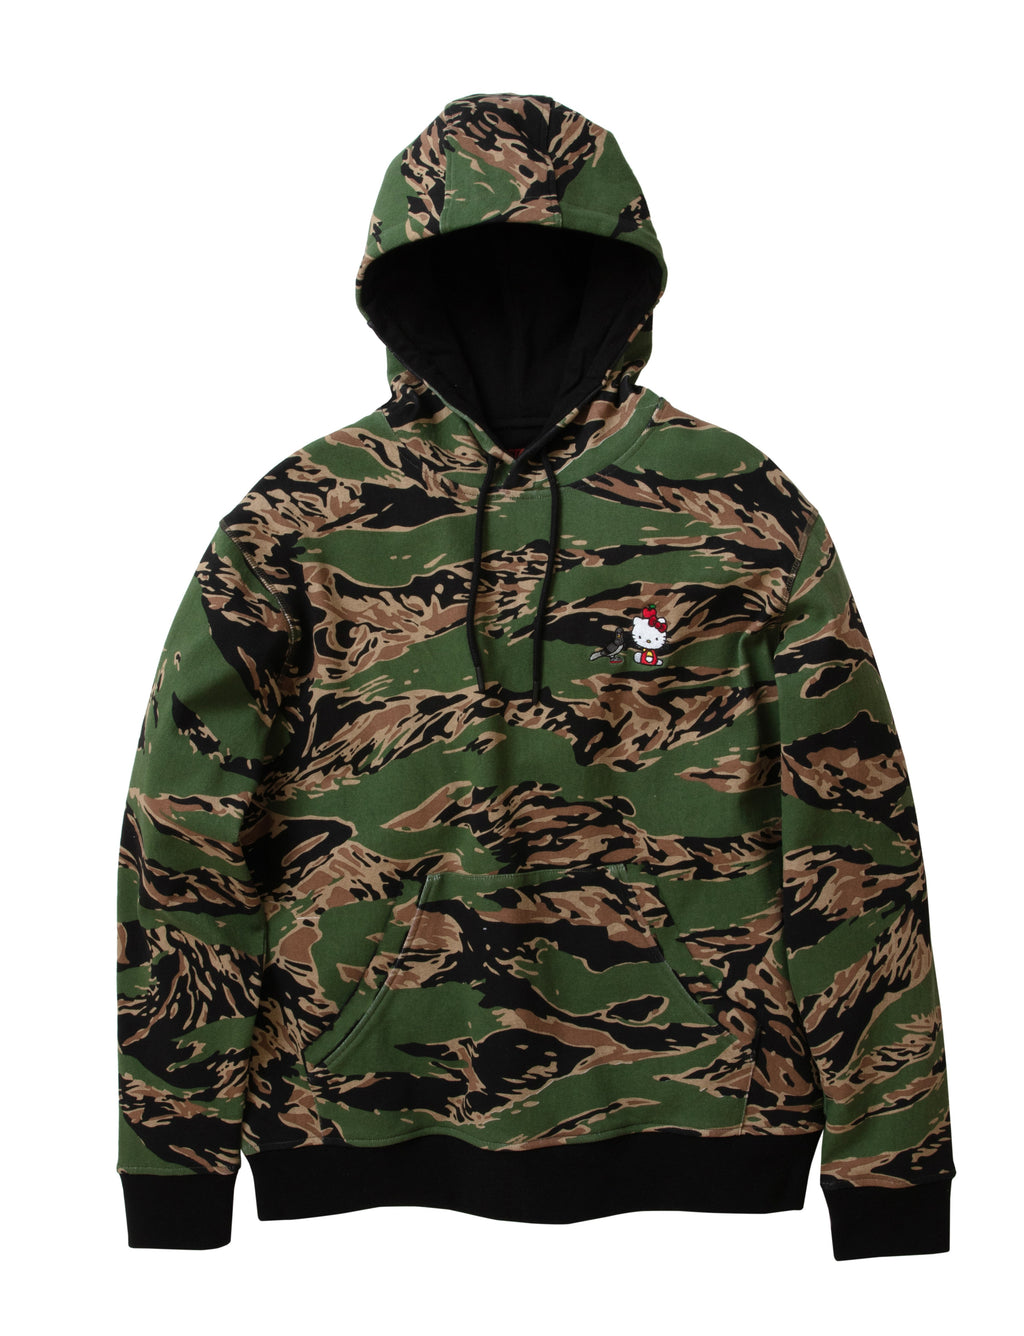 Staple x Hello Kitty Camo Hoodie - Hoodie | Staple Pigeon